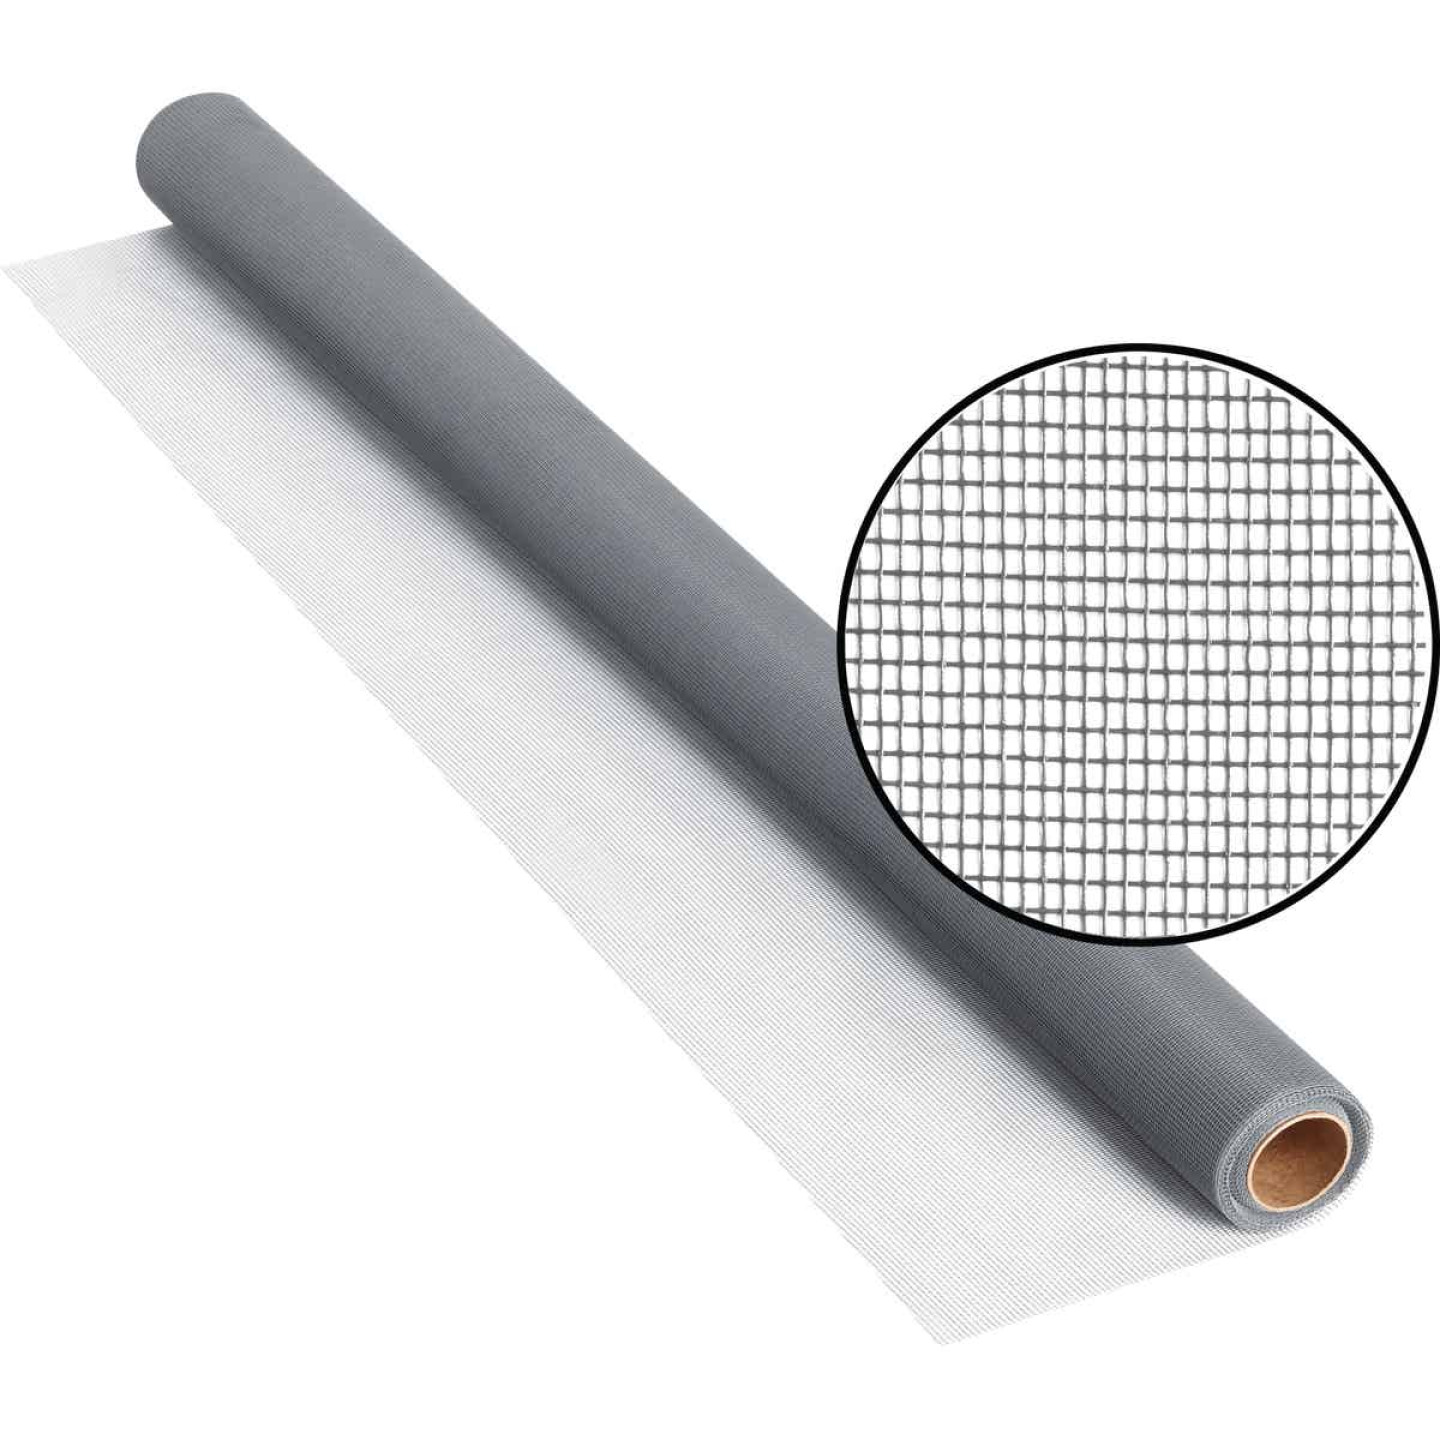 Phifer 36 In. x 25 Ft. Gray Fiberglass Screen Cloth Image 1